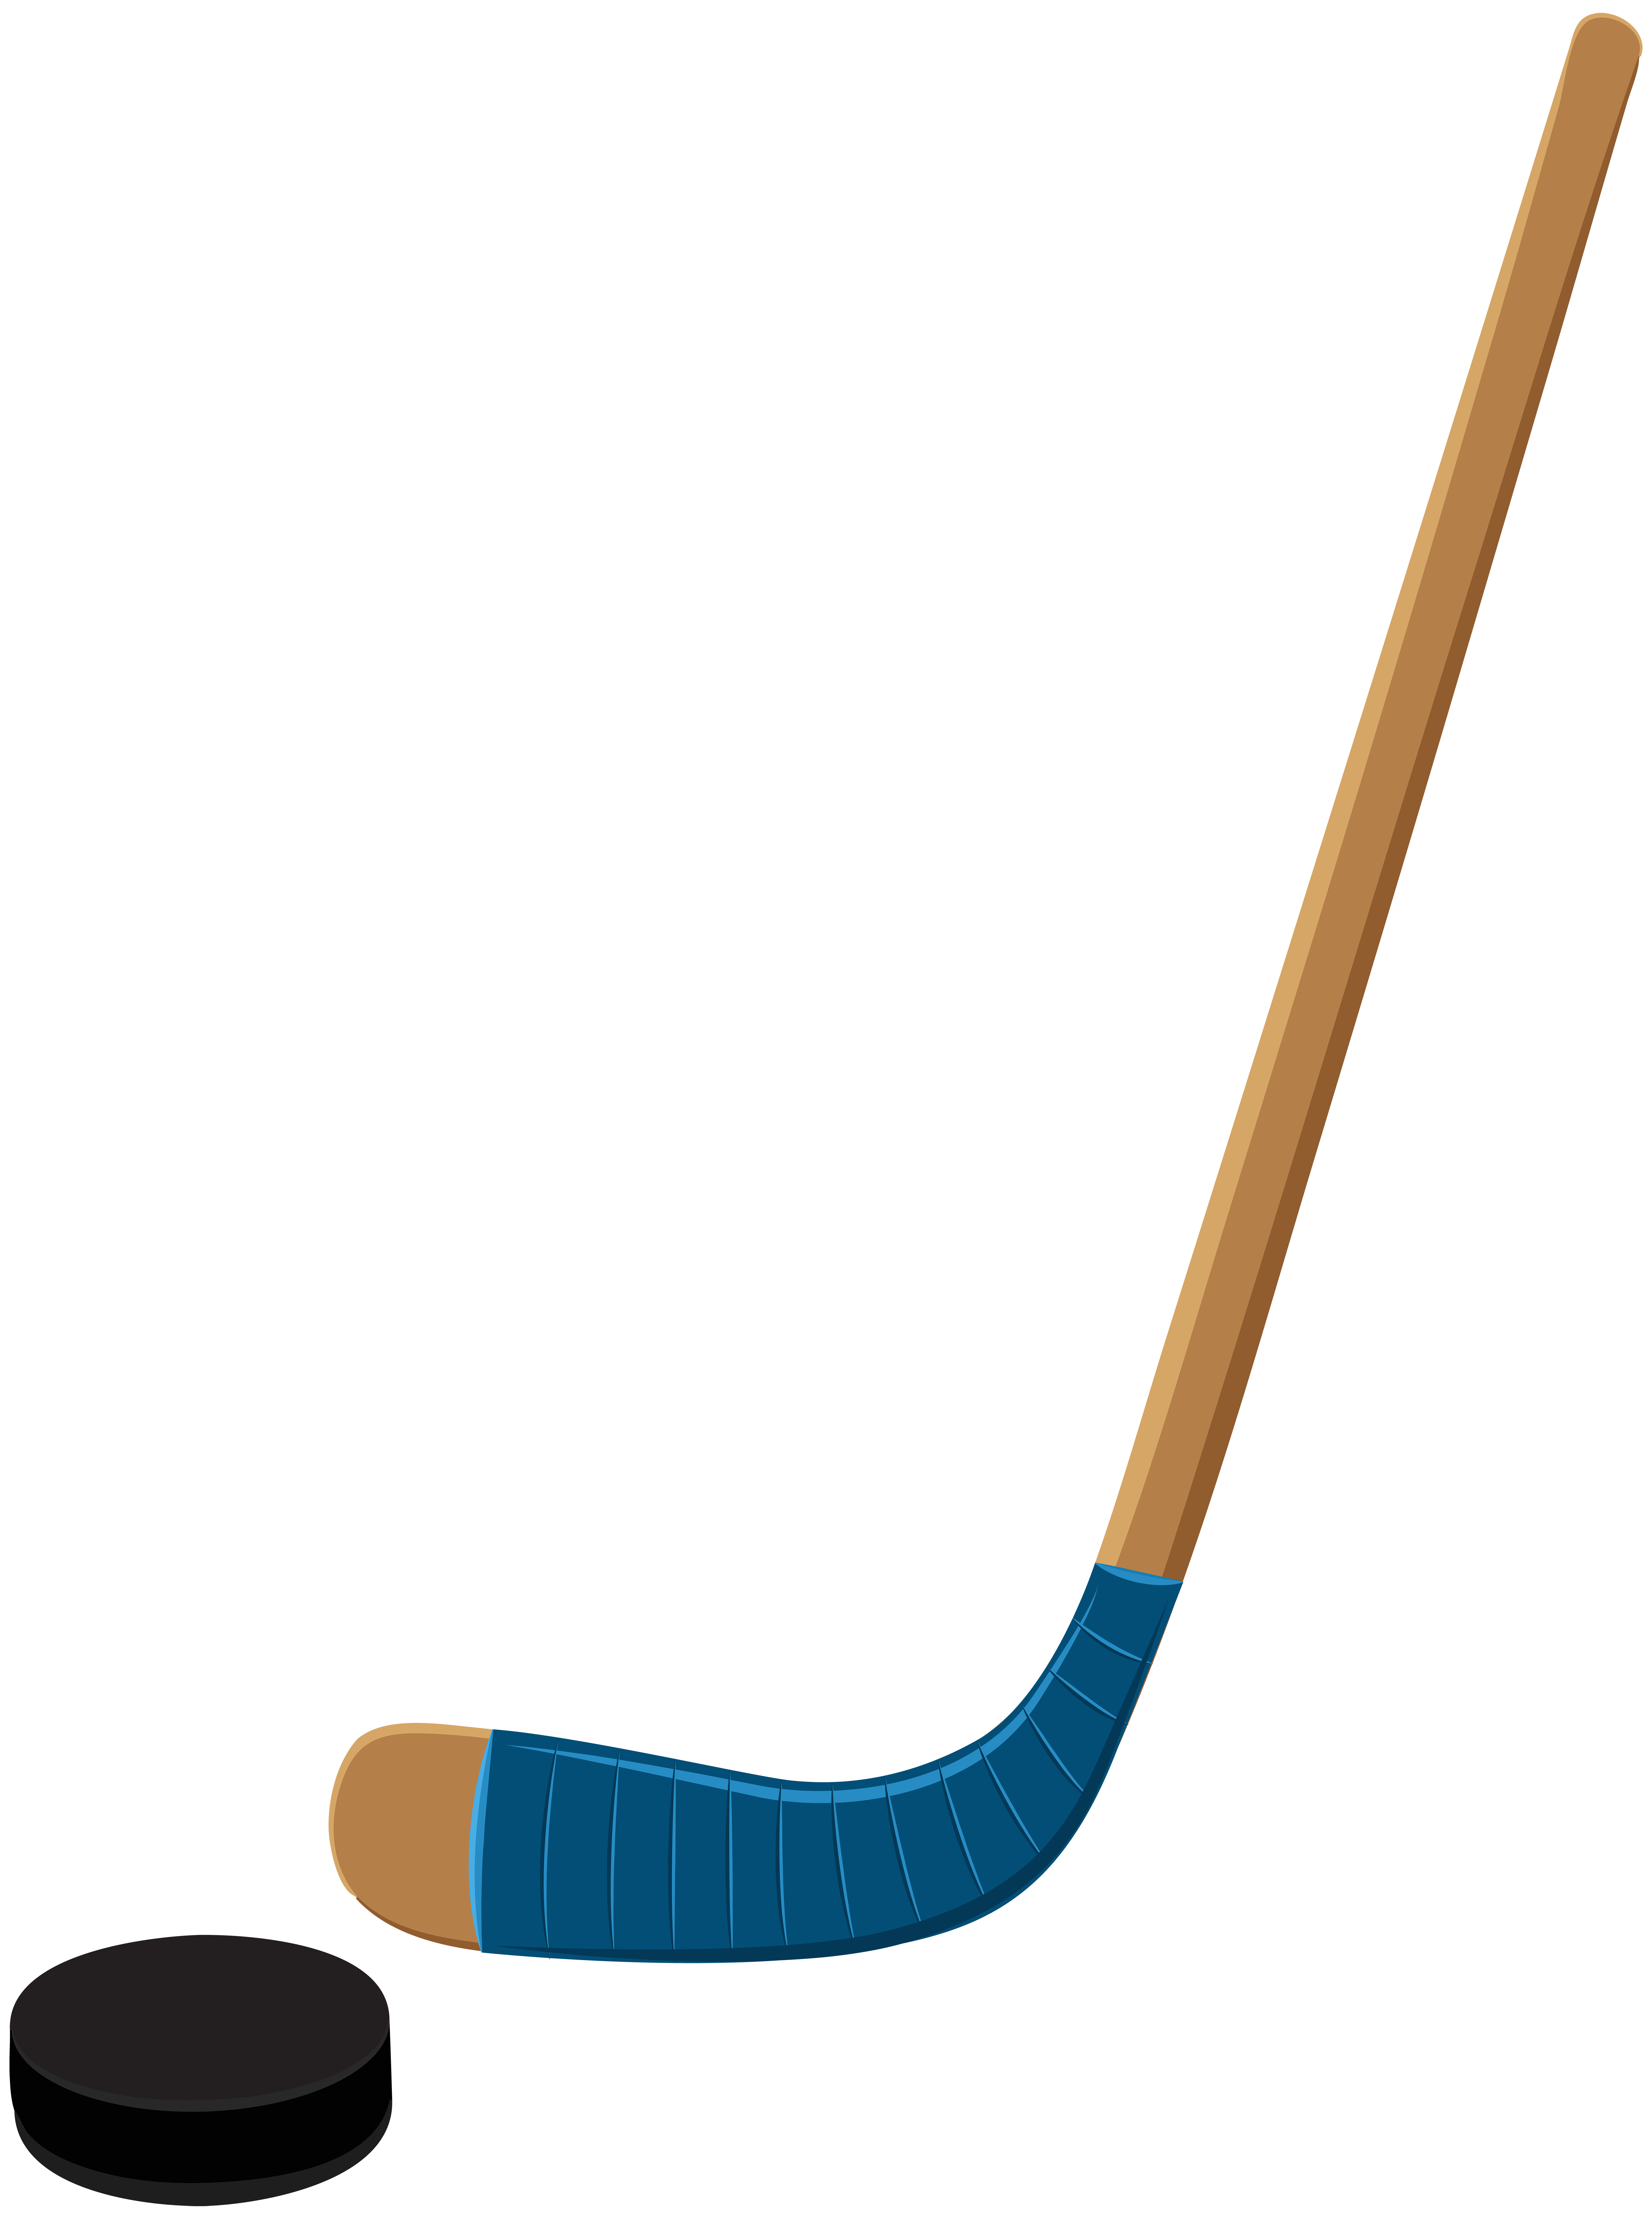 Hockey clipart svg freeuse download Field Hockey Stick Drawing | Free download best Field Hockey Stick ... svg freeuse download